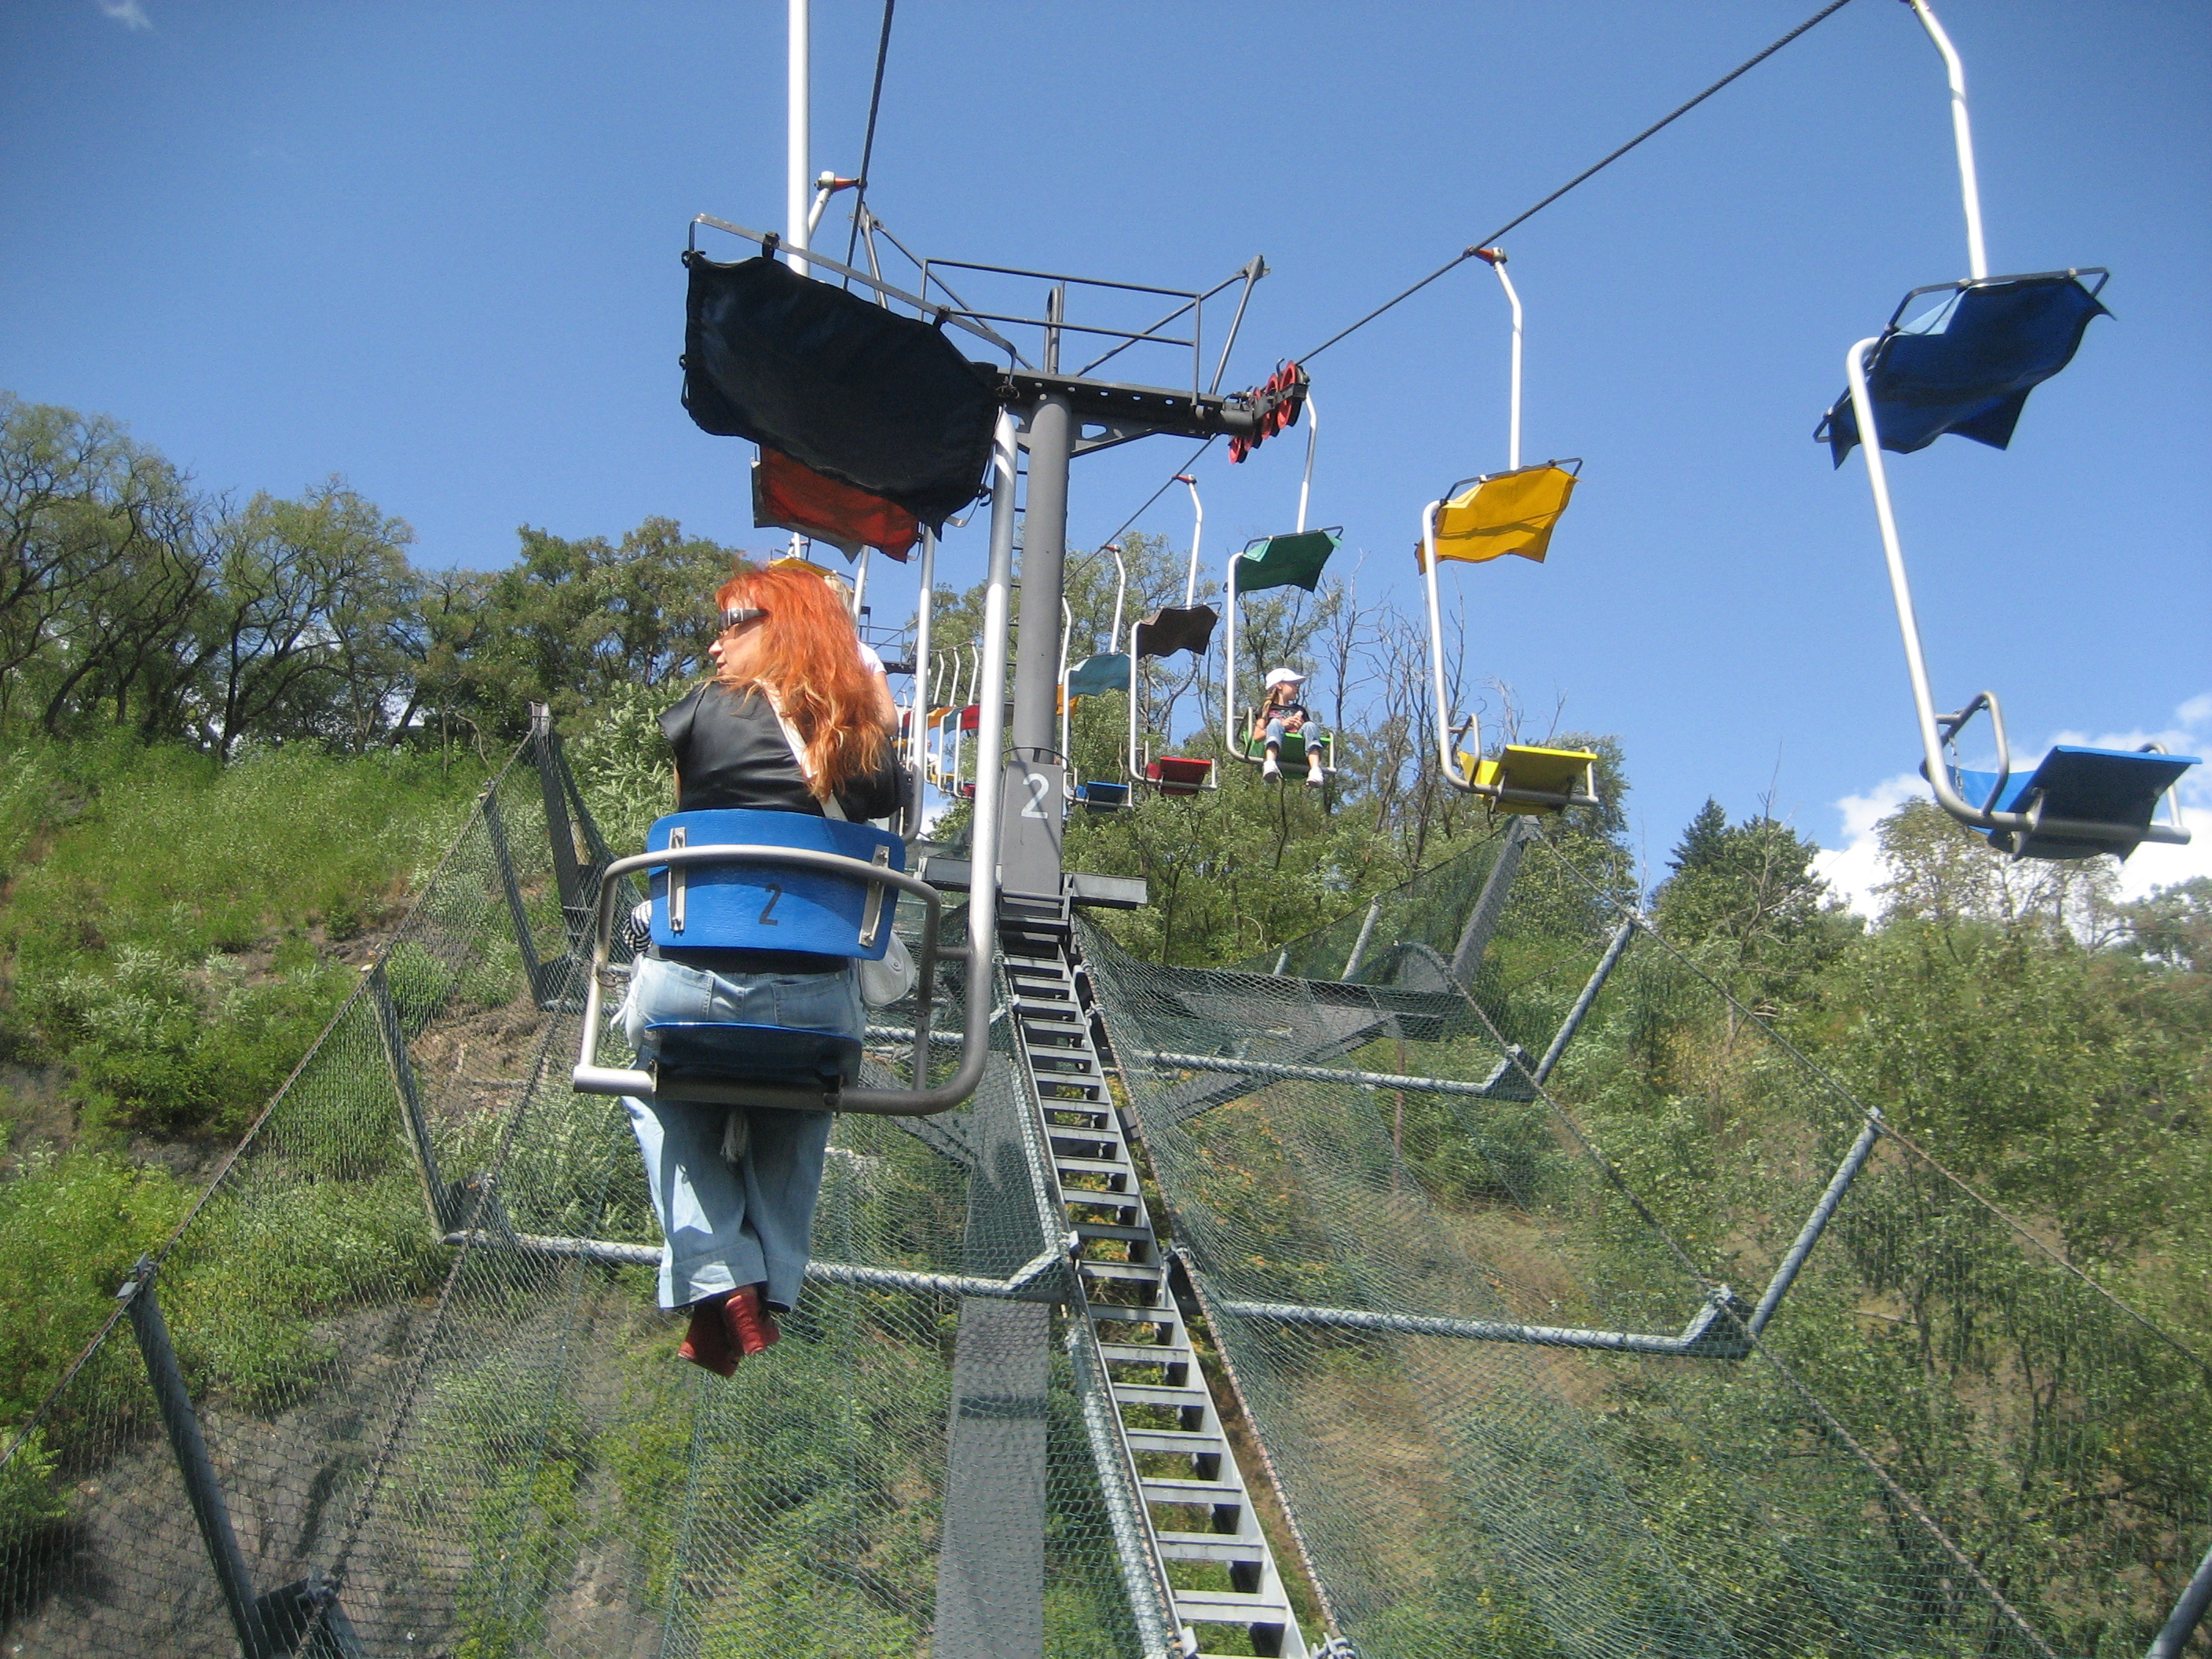 File:Prague Zoo  Chairlift  Passengers View 29Aug2009